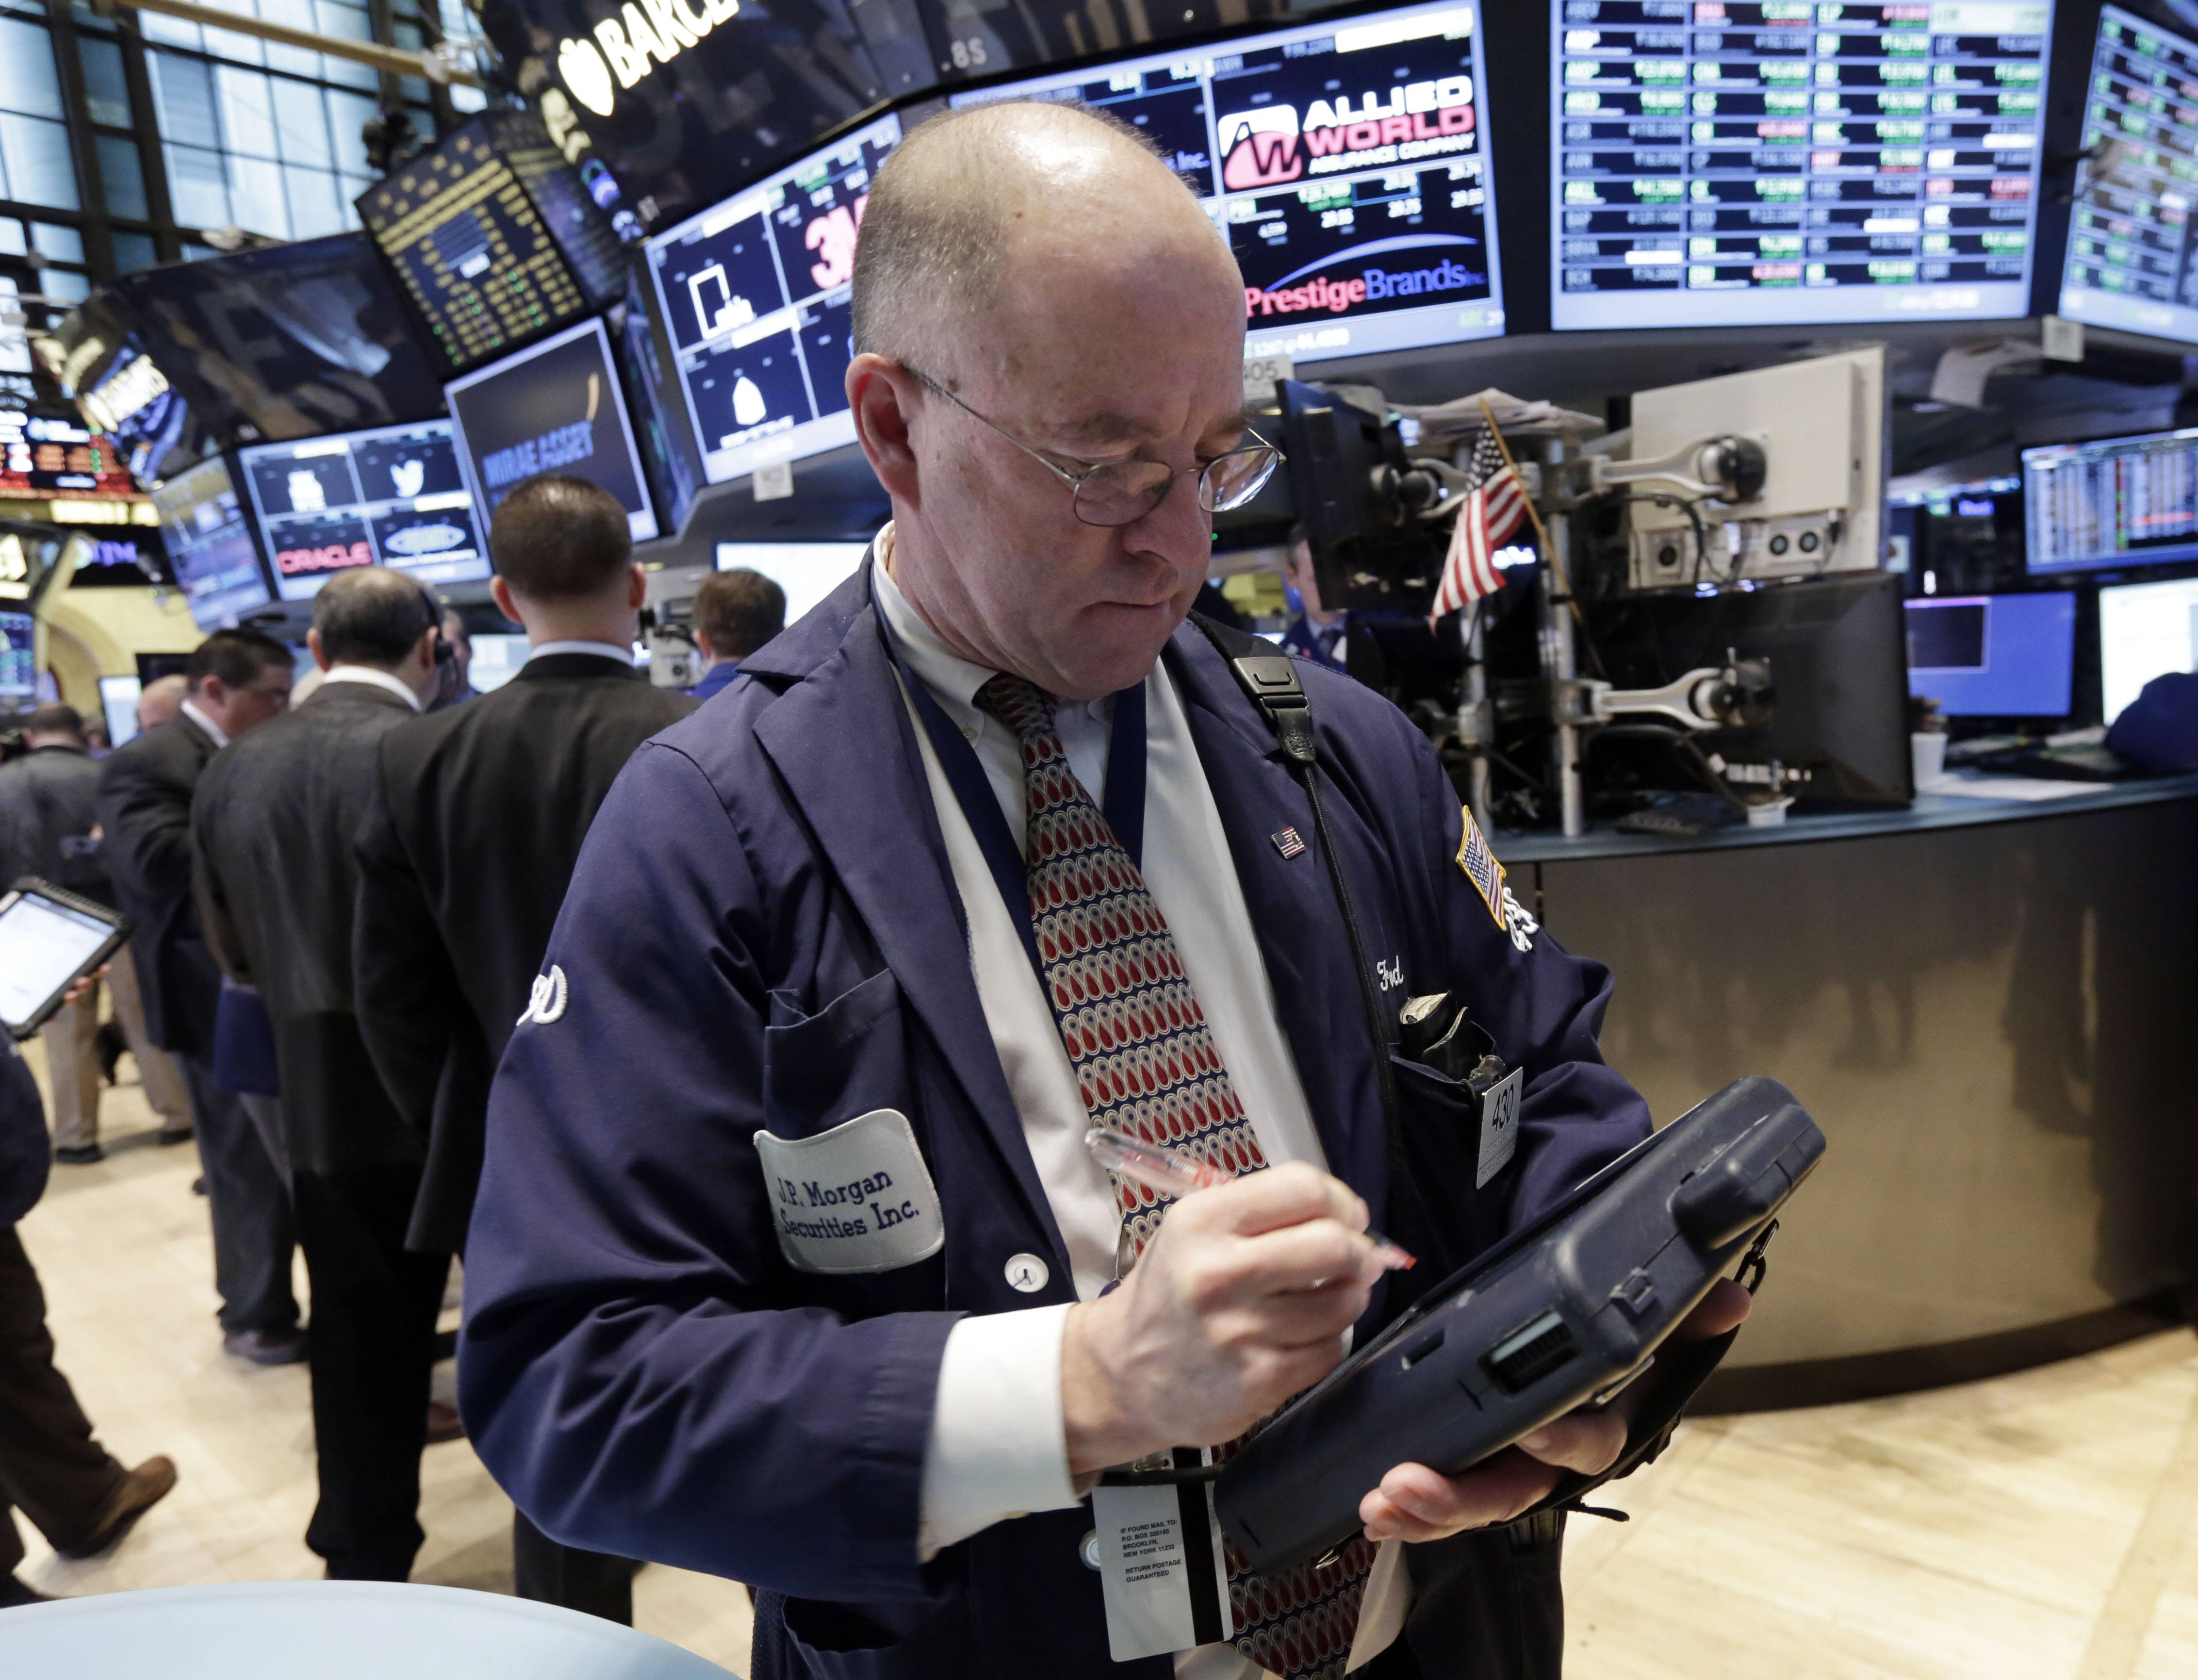 U.S. stocks rose Tuesday, with the Standard & Poor's 500 Index rebounding to a record after its biggest loss in a month, as comments from Russian President Vladimir Putin signaled the Ukraine crisis won't immediately escalate.